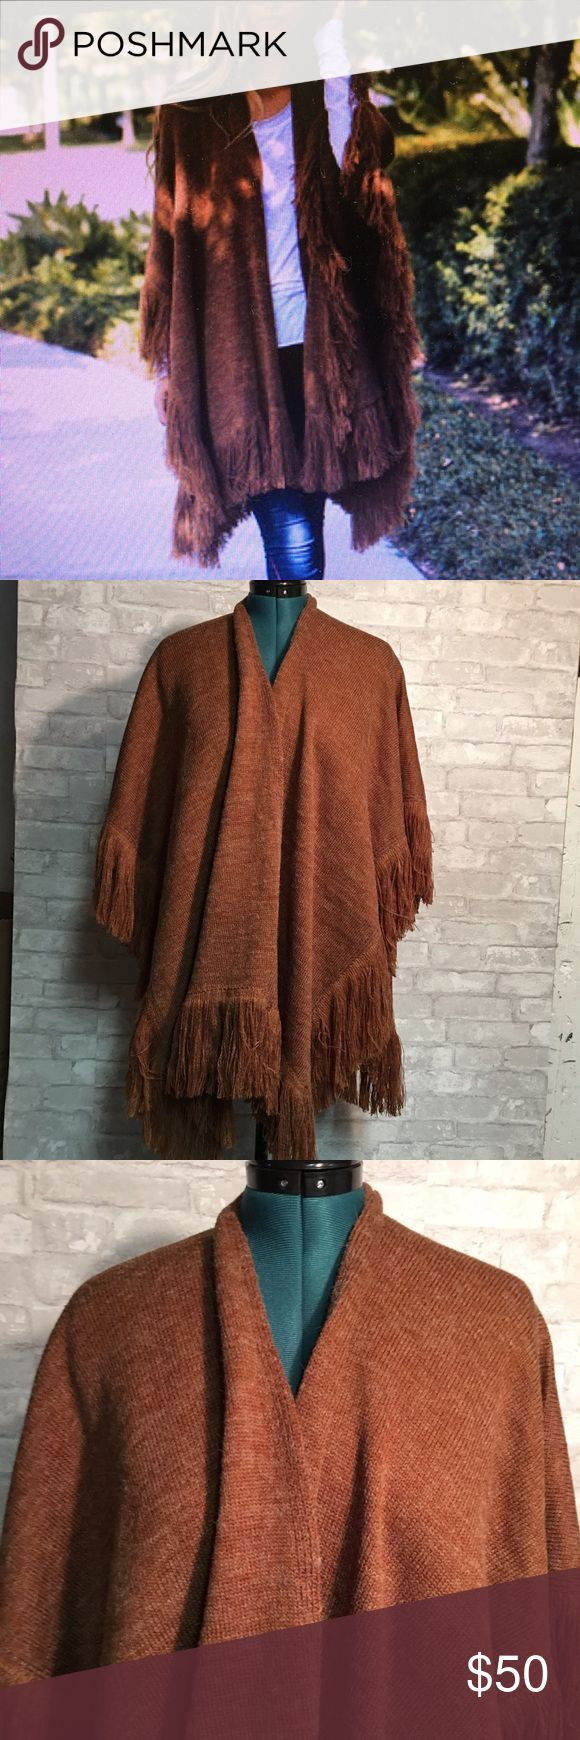 Camel heathered Poncho Camel heathered Poncho. One size fits all, fringed hemline. Fabric is 50% polyester/ 50% Acrylic. Sweaters Shrugs & Ponchos